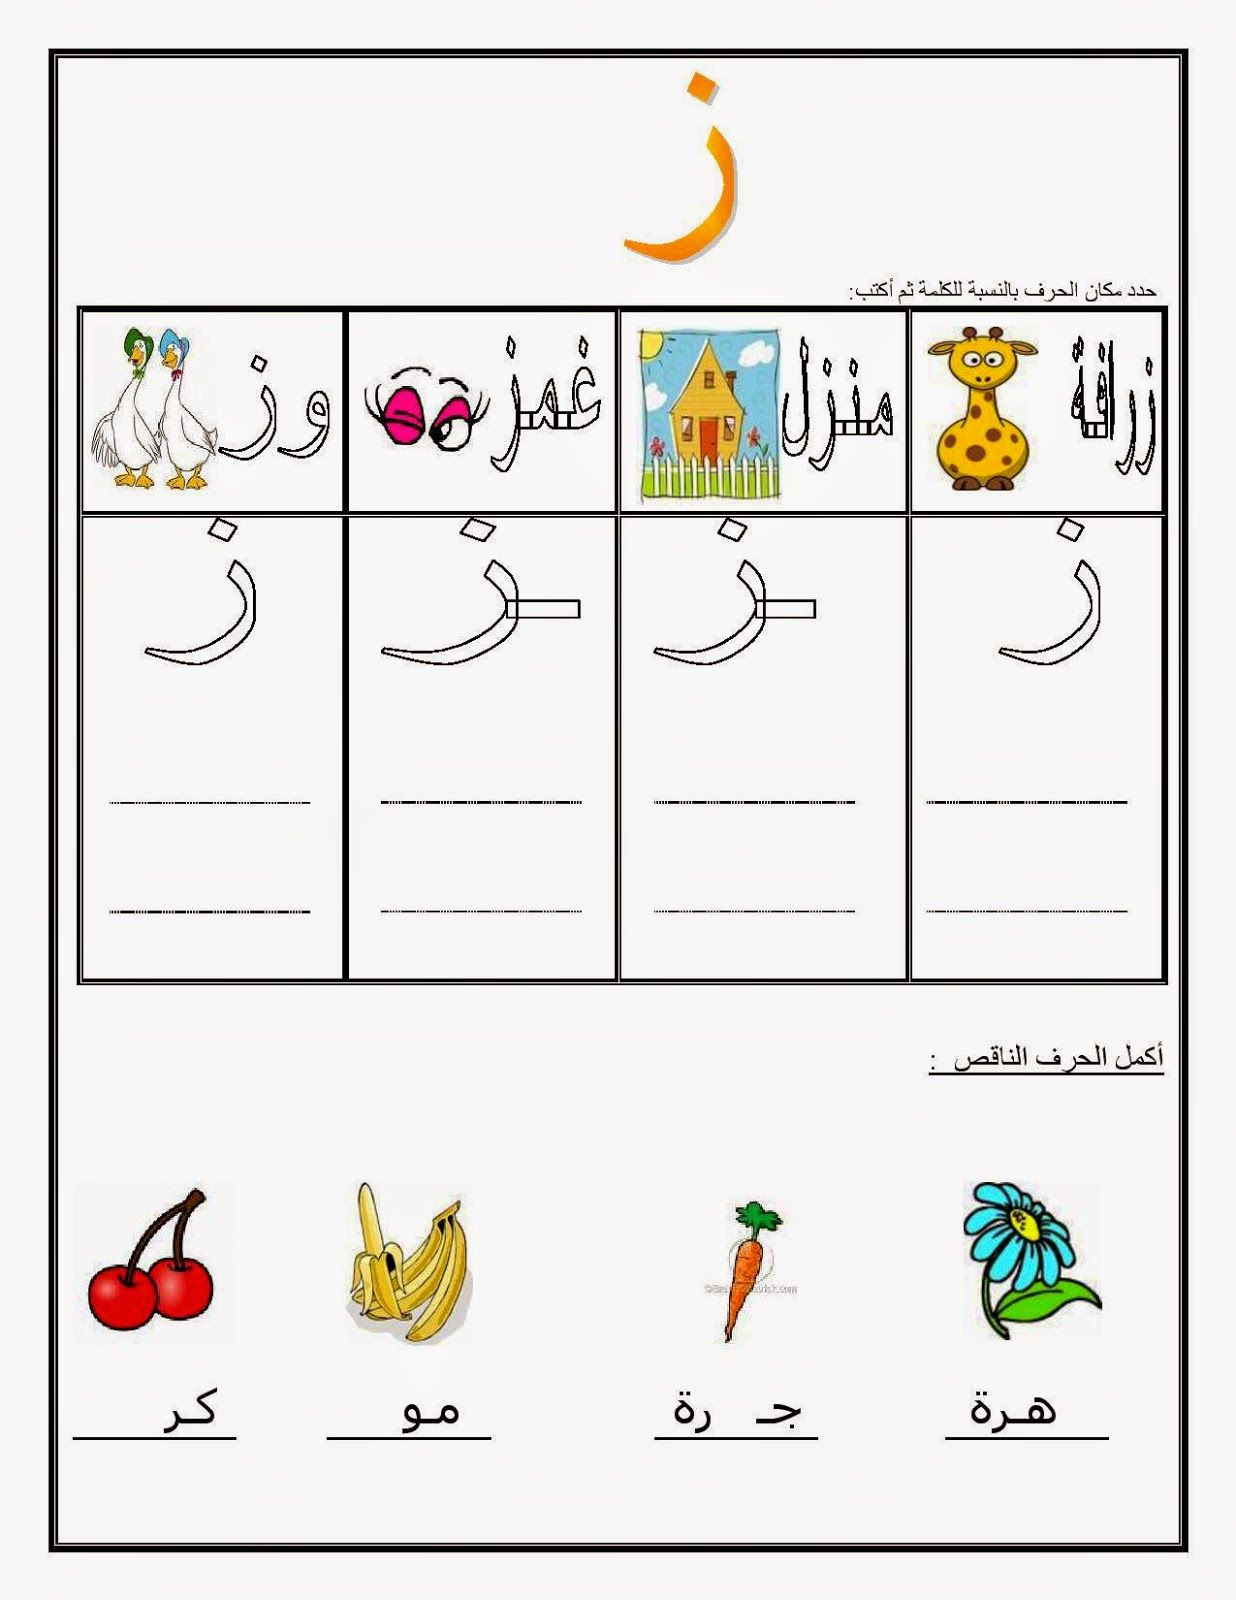 pin by fufa hussein on pic arabic language writing practice worksheets arabic alphabet. Black Bedroom Furniture Sets. Home Design Ideas